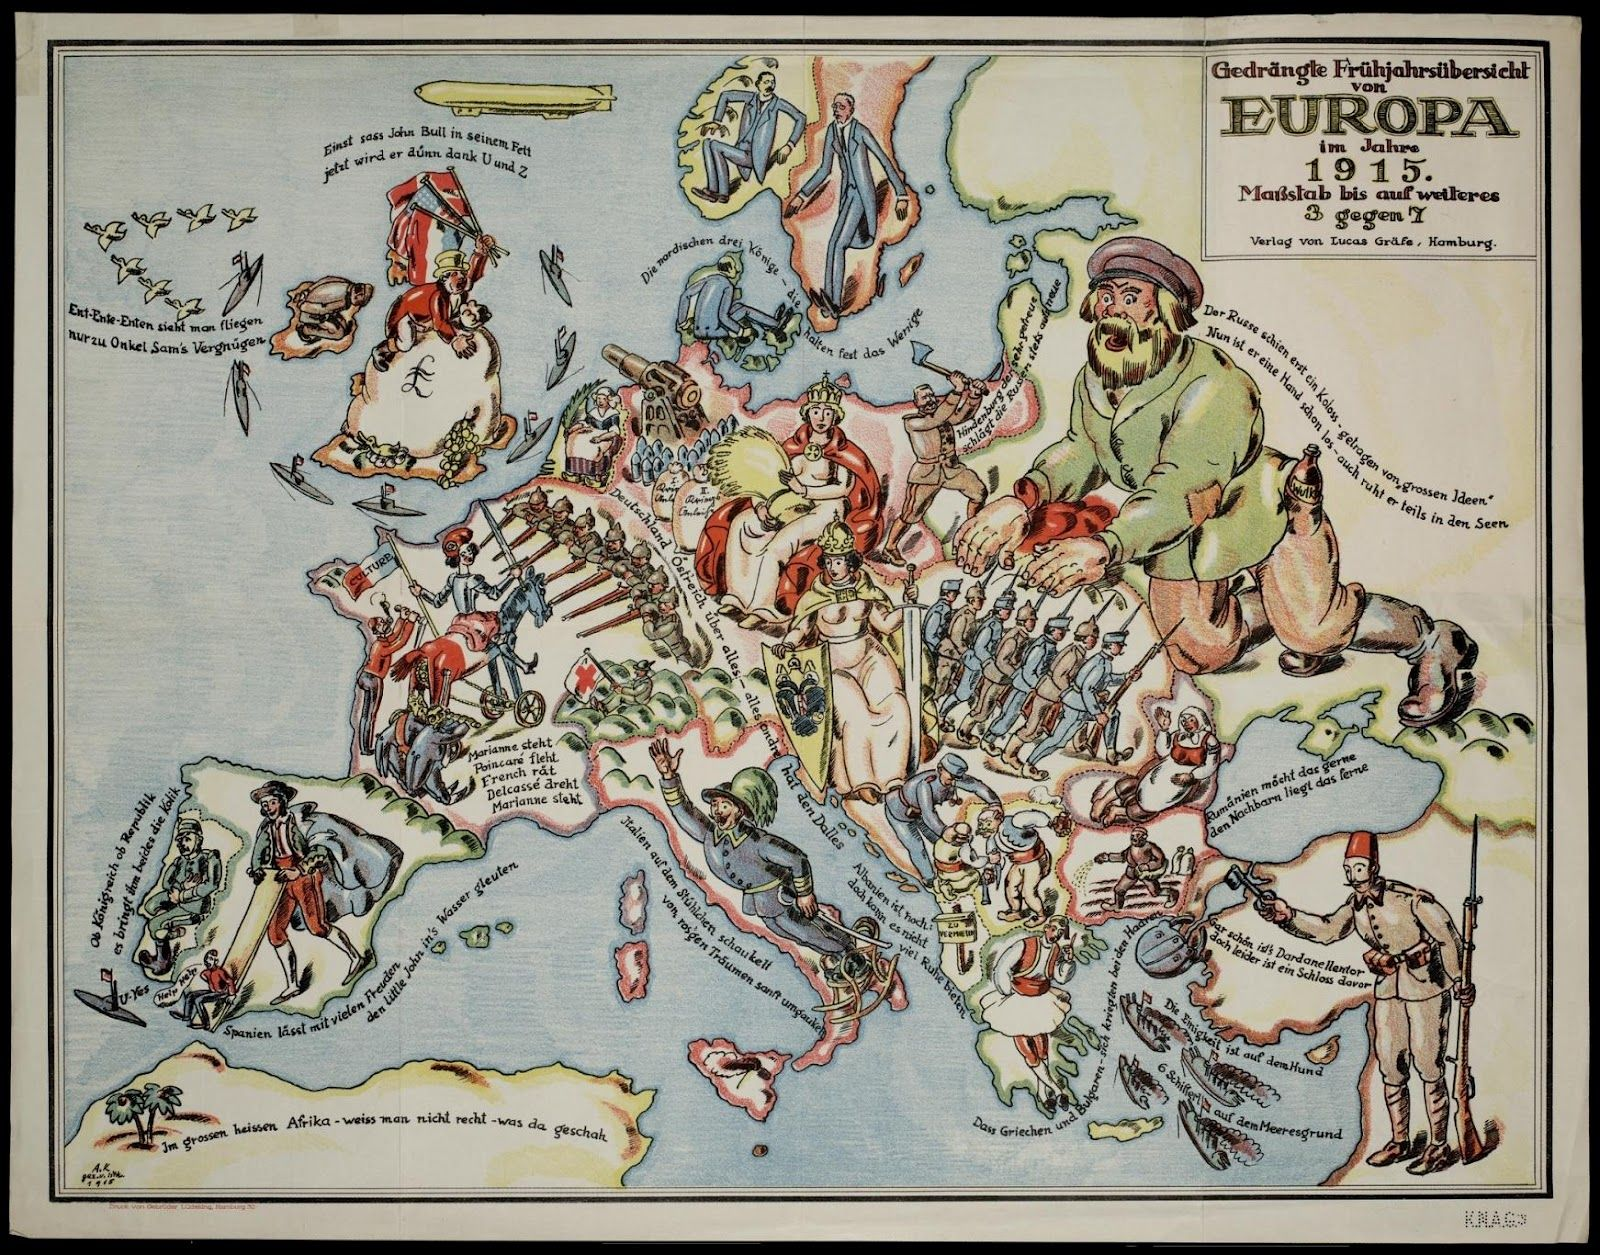 Colorful Comical Map of Europe in 1897